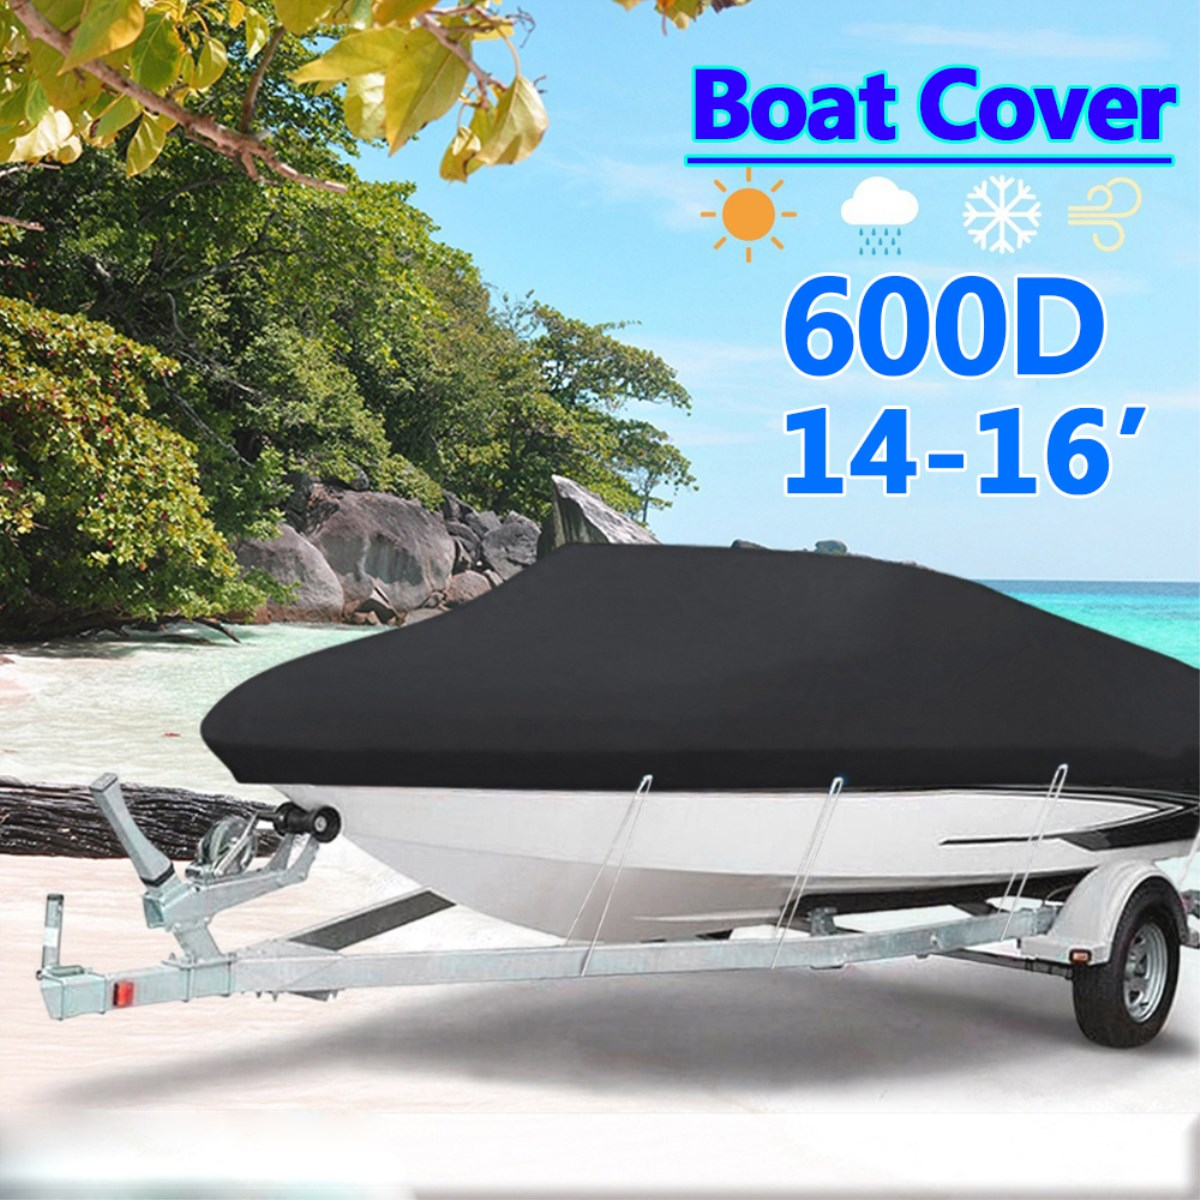 Black Heavy Duty 14-16ft 600D Beam 90inch Trailerable Marine Grade Boat Cover for Yacht Boat Waterproof Anti-UV Boat Accessories heavy duty 60v 600a marine dual battery selector switch for boat rv semi motor yacht boats red abd black page 6